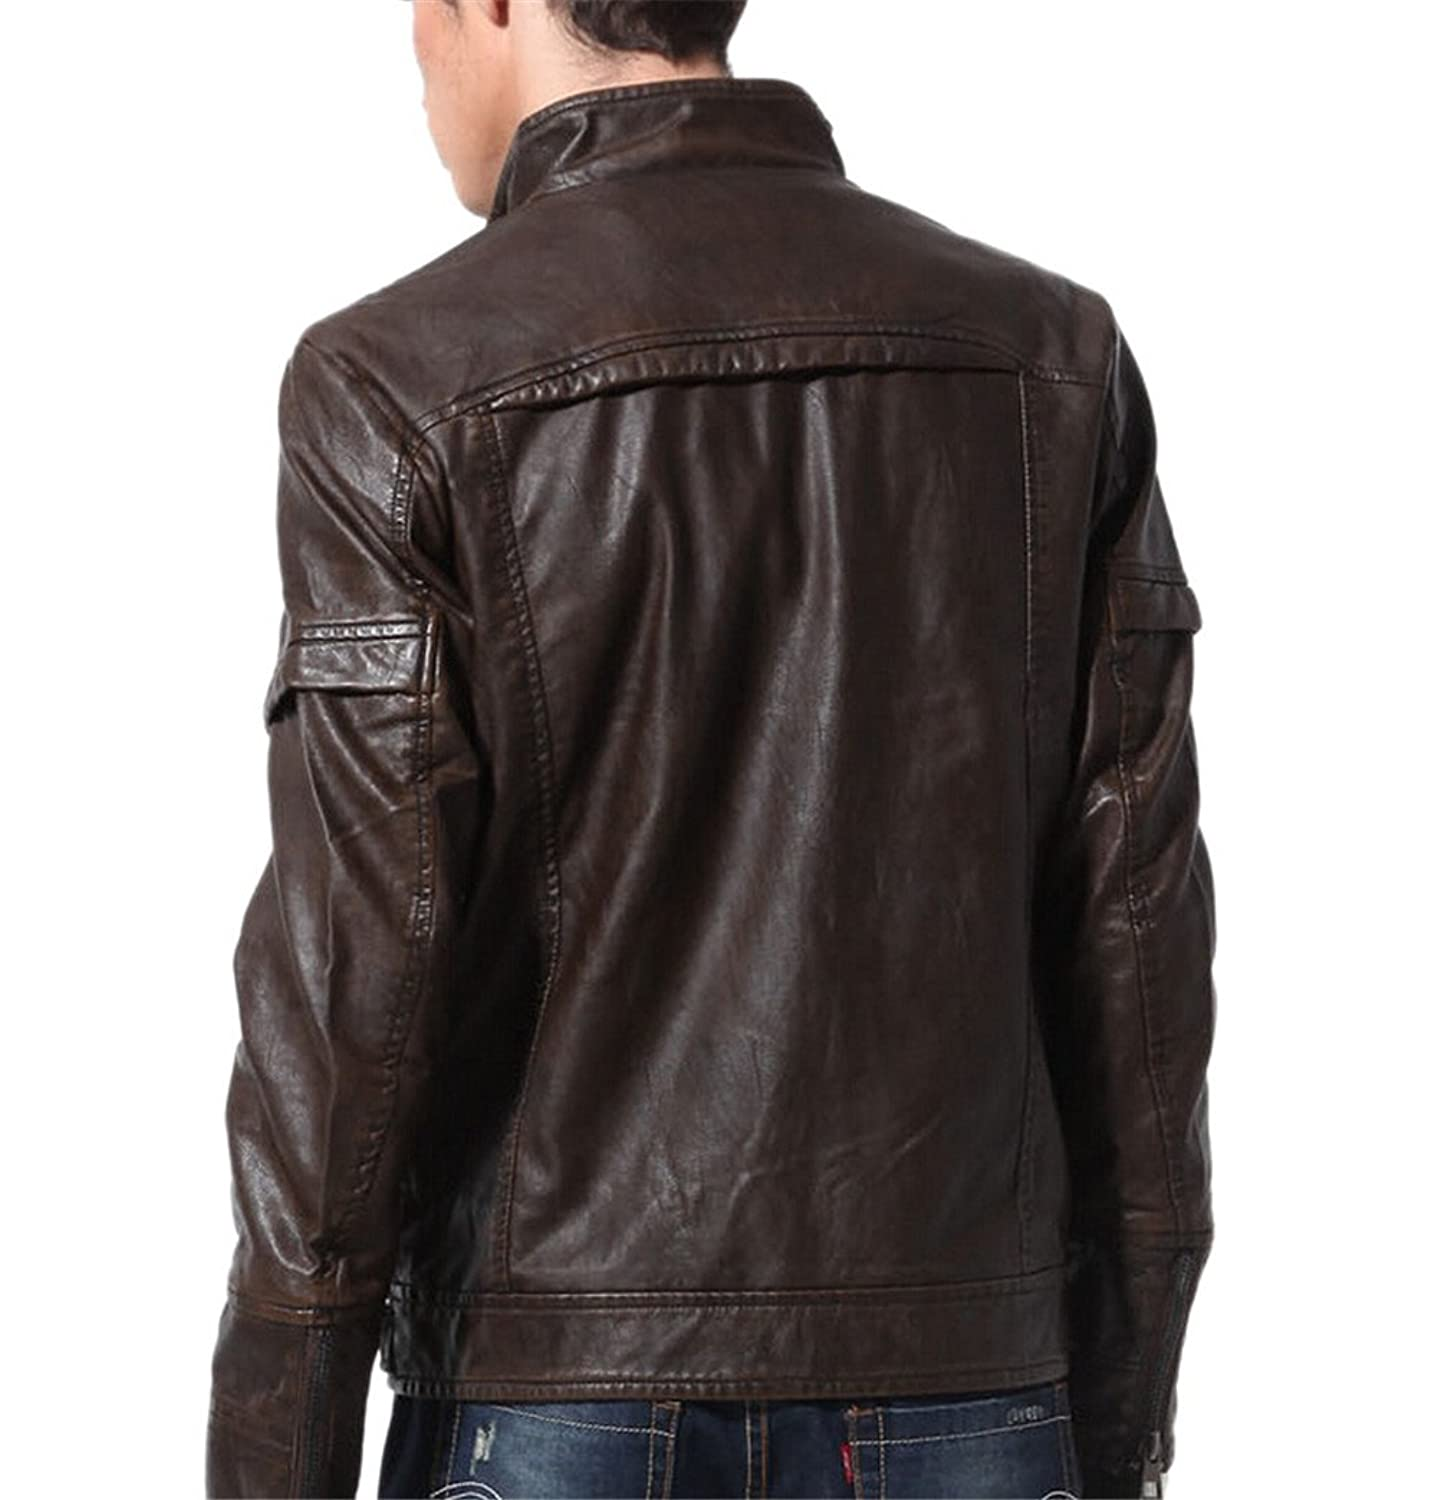 JJZXX Men's Vintage Stand Collar Pu Leather Jacket Bomber Motorcycle Jacket